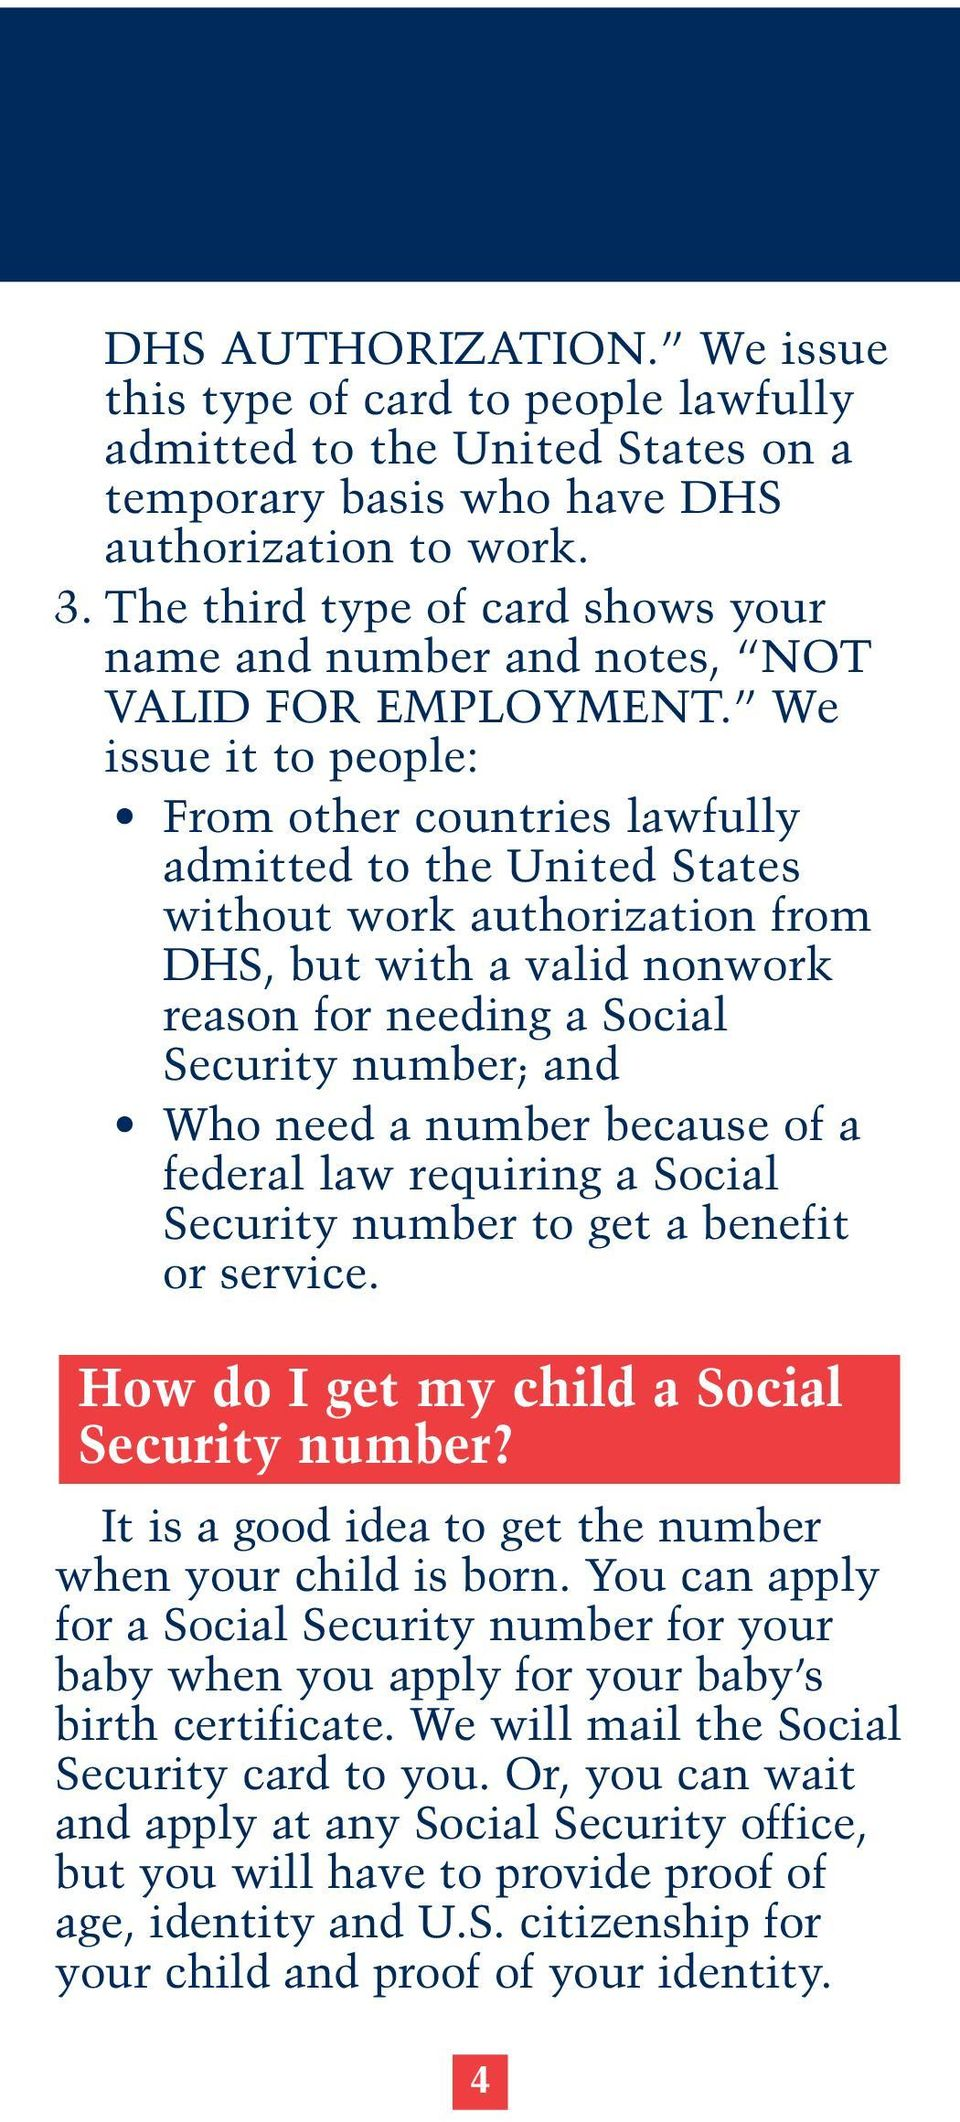 We issue it to people: From other countries lawfully admitted to the United States without work authorization from DHS, but with a valid nonwork reason for needing a Social Security number; and Who